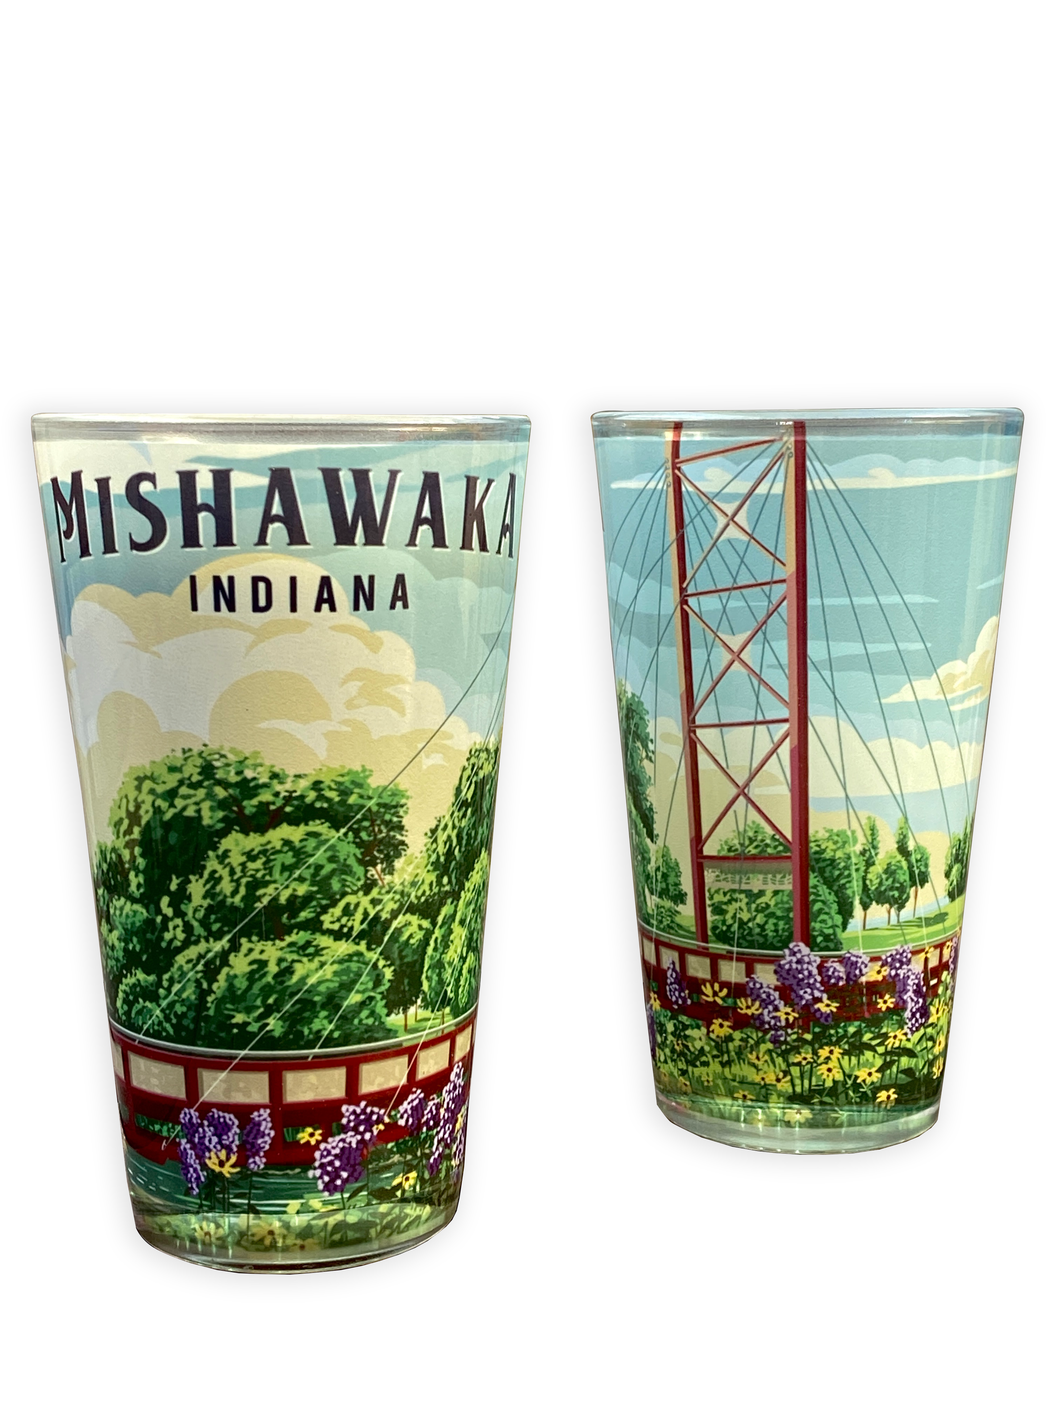 Mishawaka Indiana riverwalk pint glass